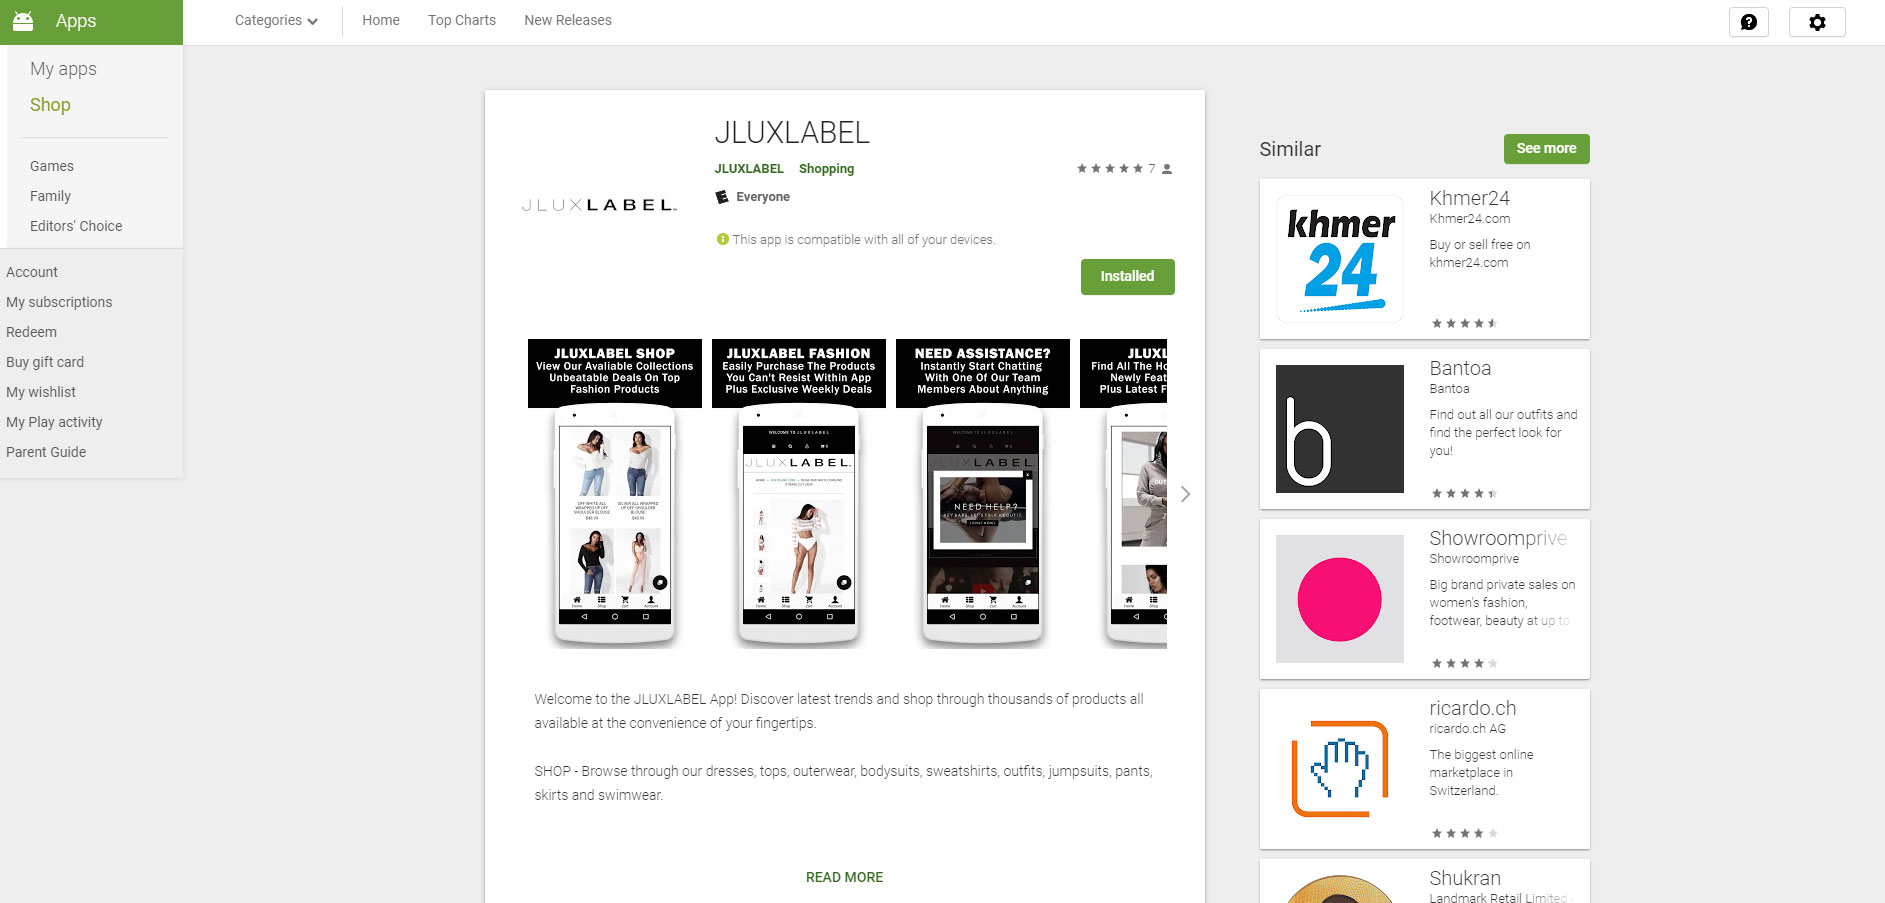 JLUXLABEL Android Mobile Application